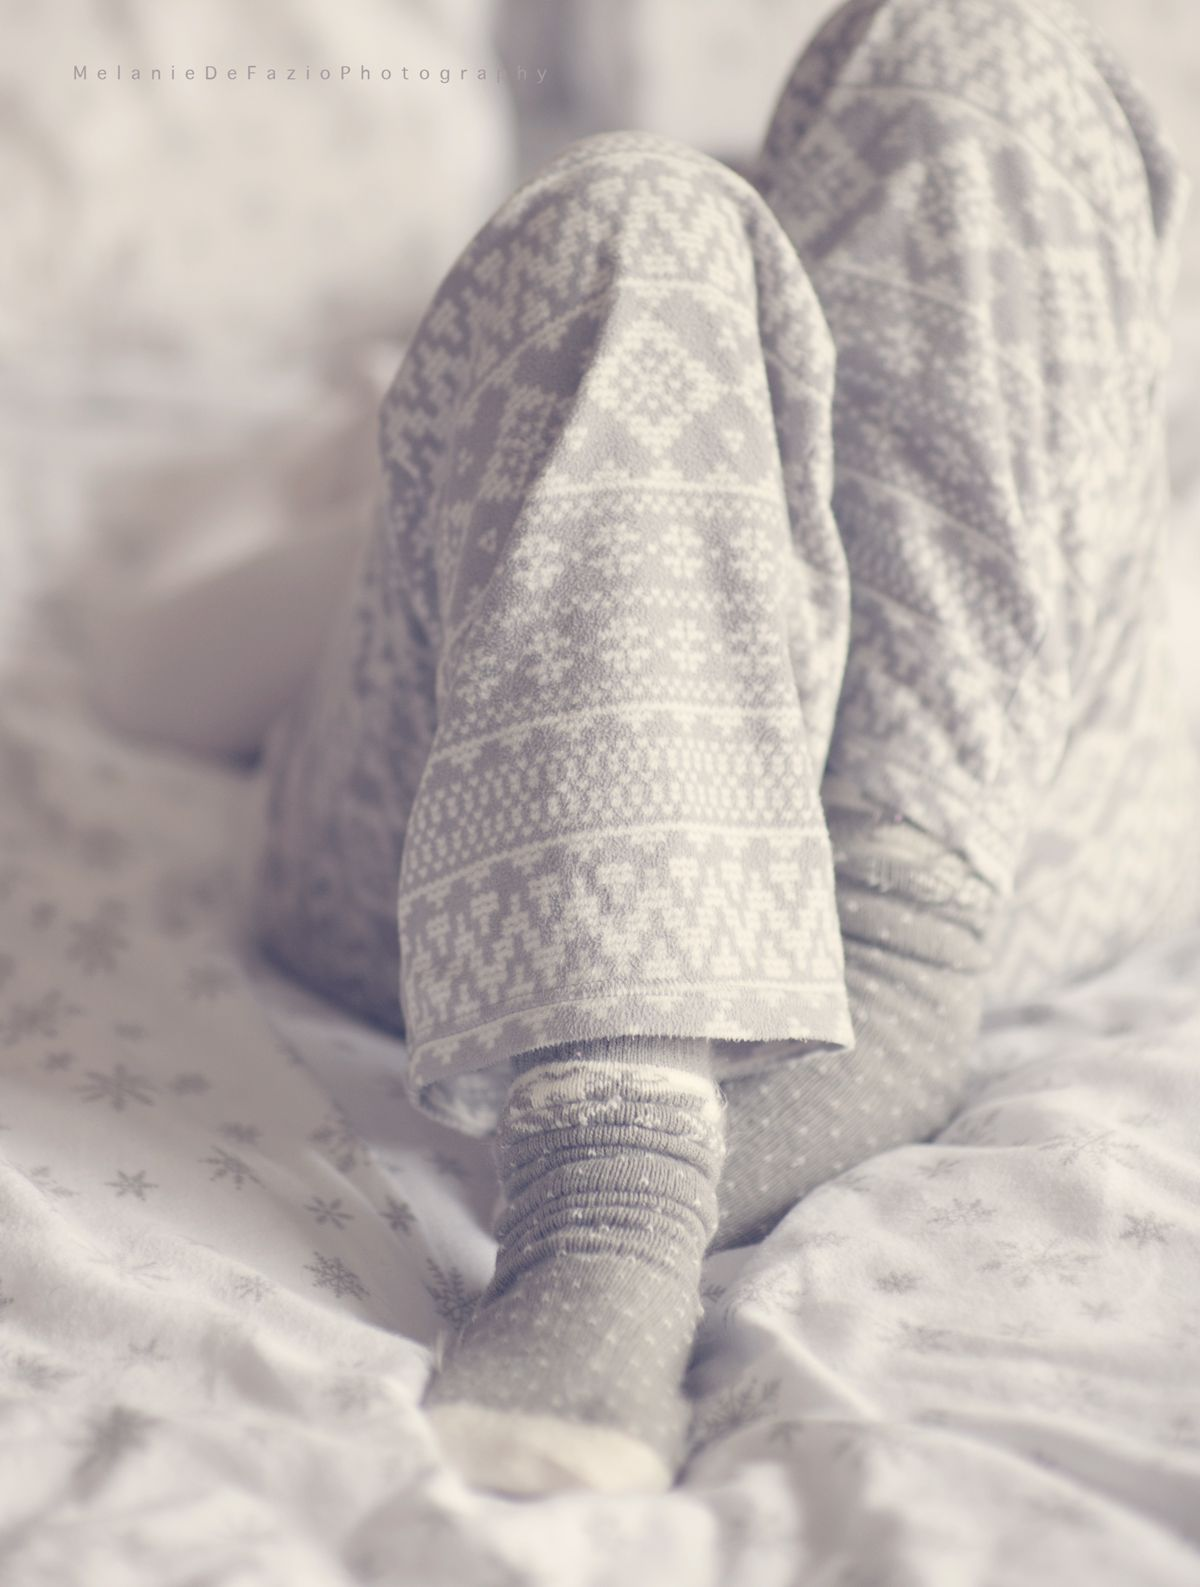 snowflake flannel sheets, cozy fleece pj pants and warm cozy socks ... - Flanell Fleece Bettwasche Kalten Winterzeit